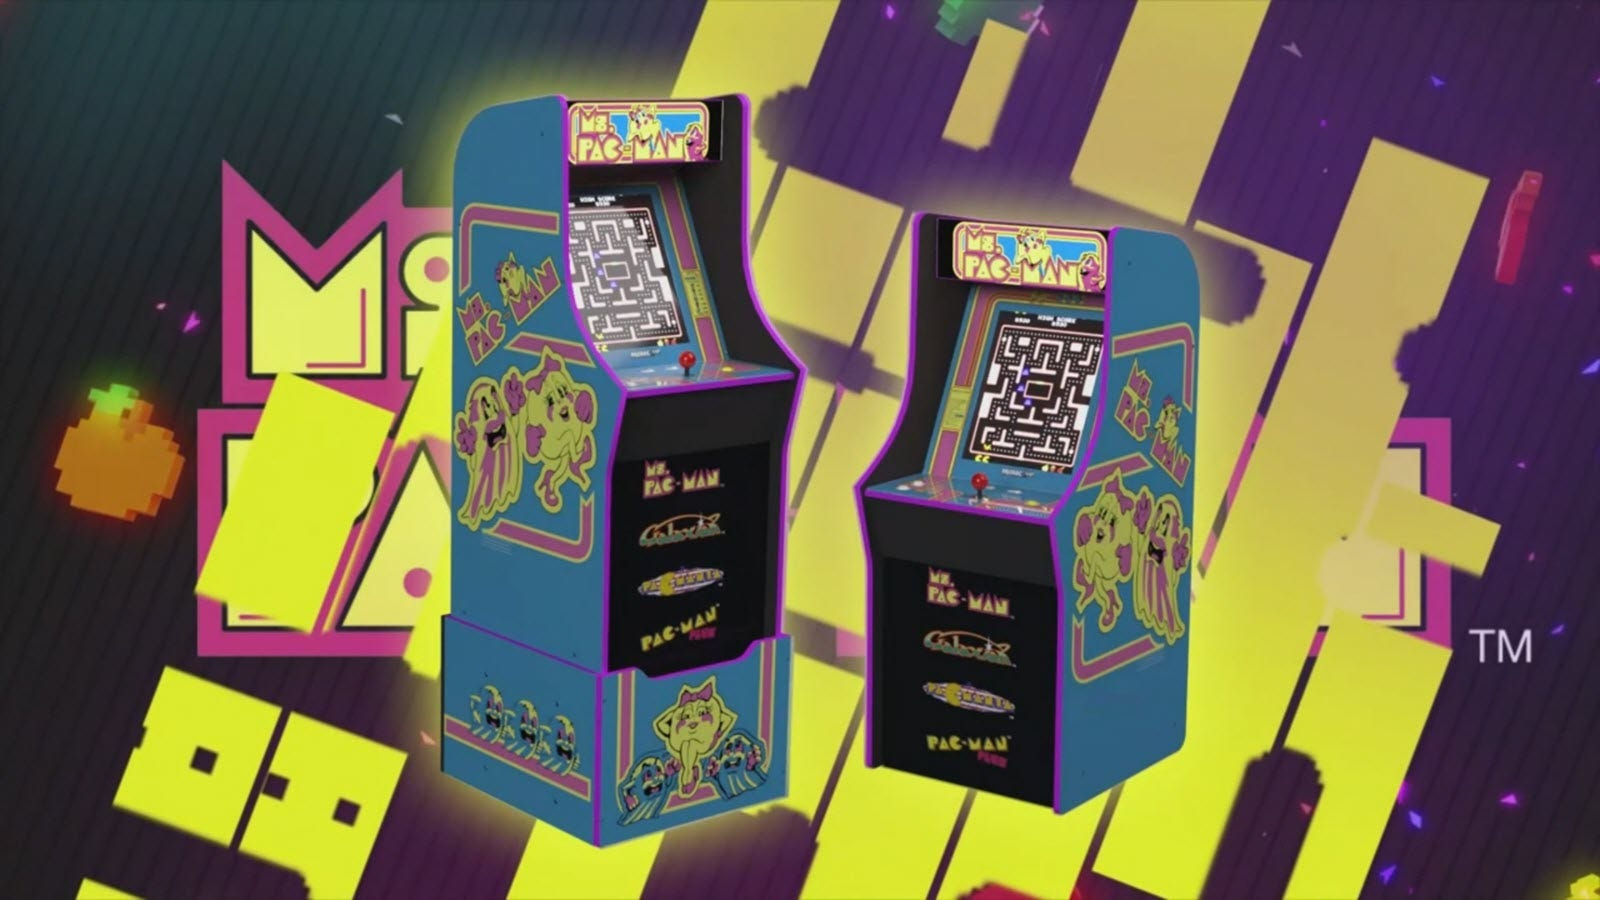 The MS. Pac-Man Arcade1Up machine on and off the riser.